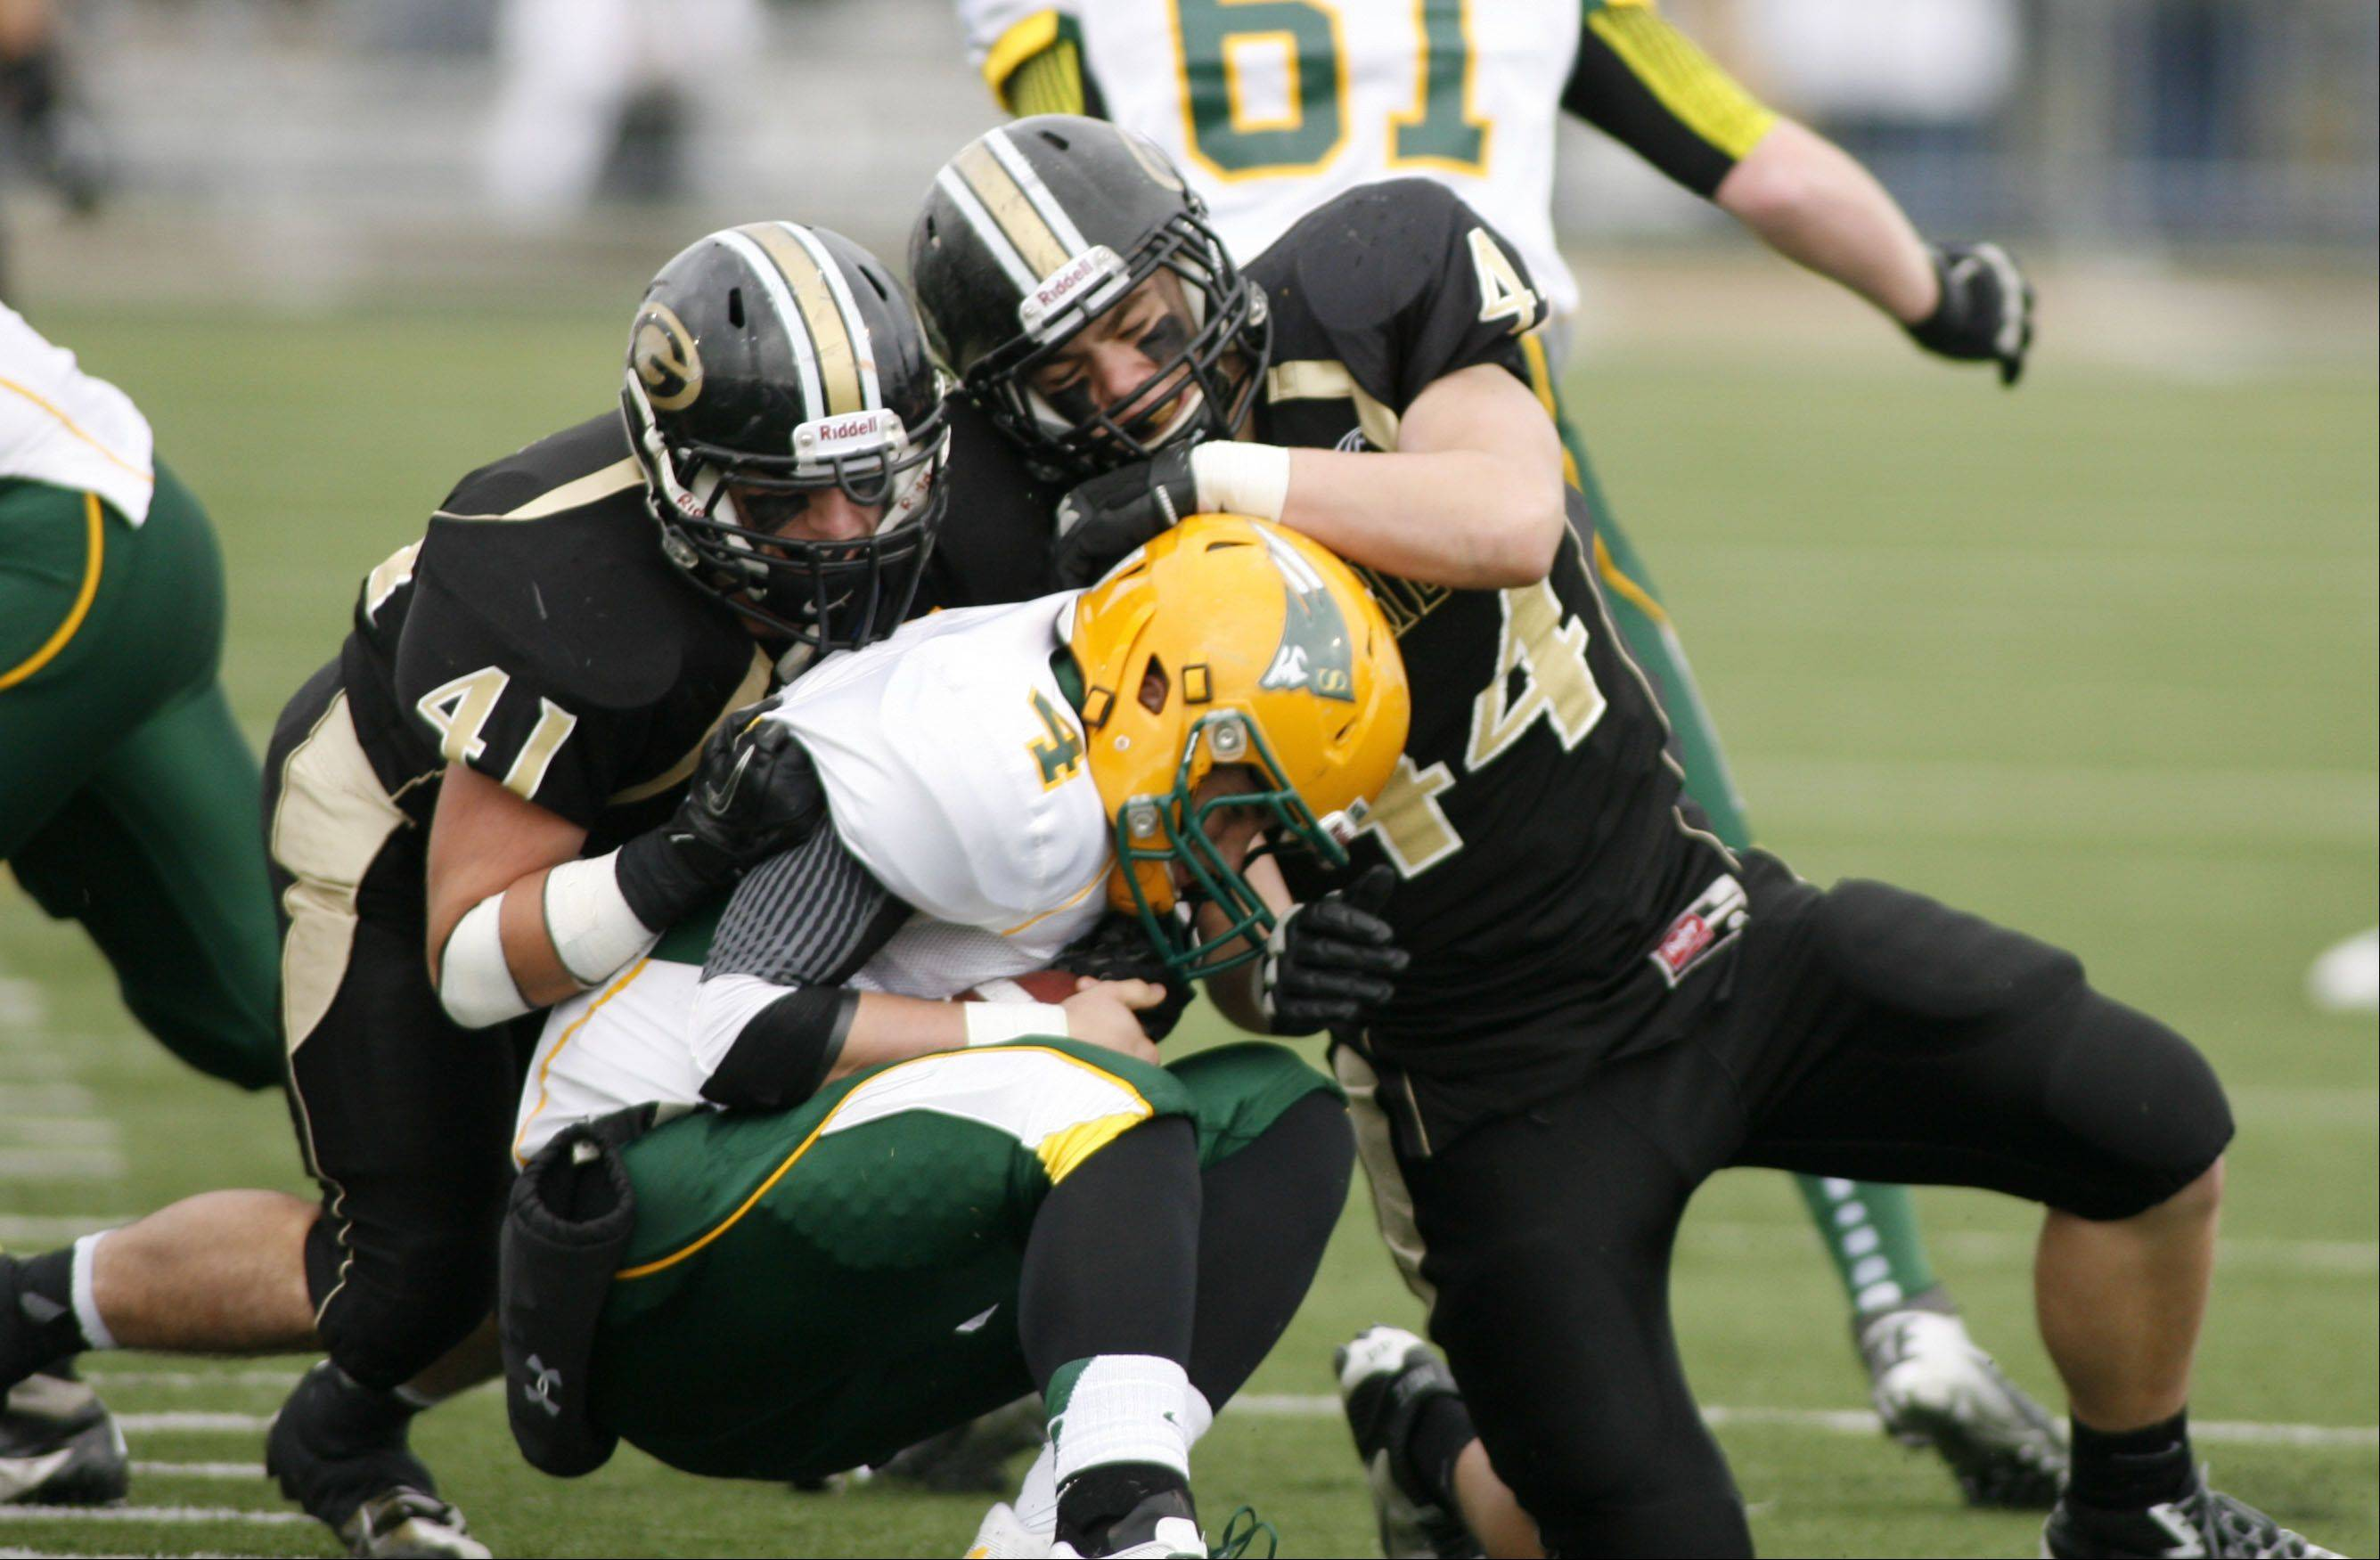 Glenbard North�s Dominic Fornino (41) and Andrew Mulshine (44) sack Stevenson quarterback Willie Bourbon during second-round Class 8A playoff action Saturday in Carol Stream.